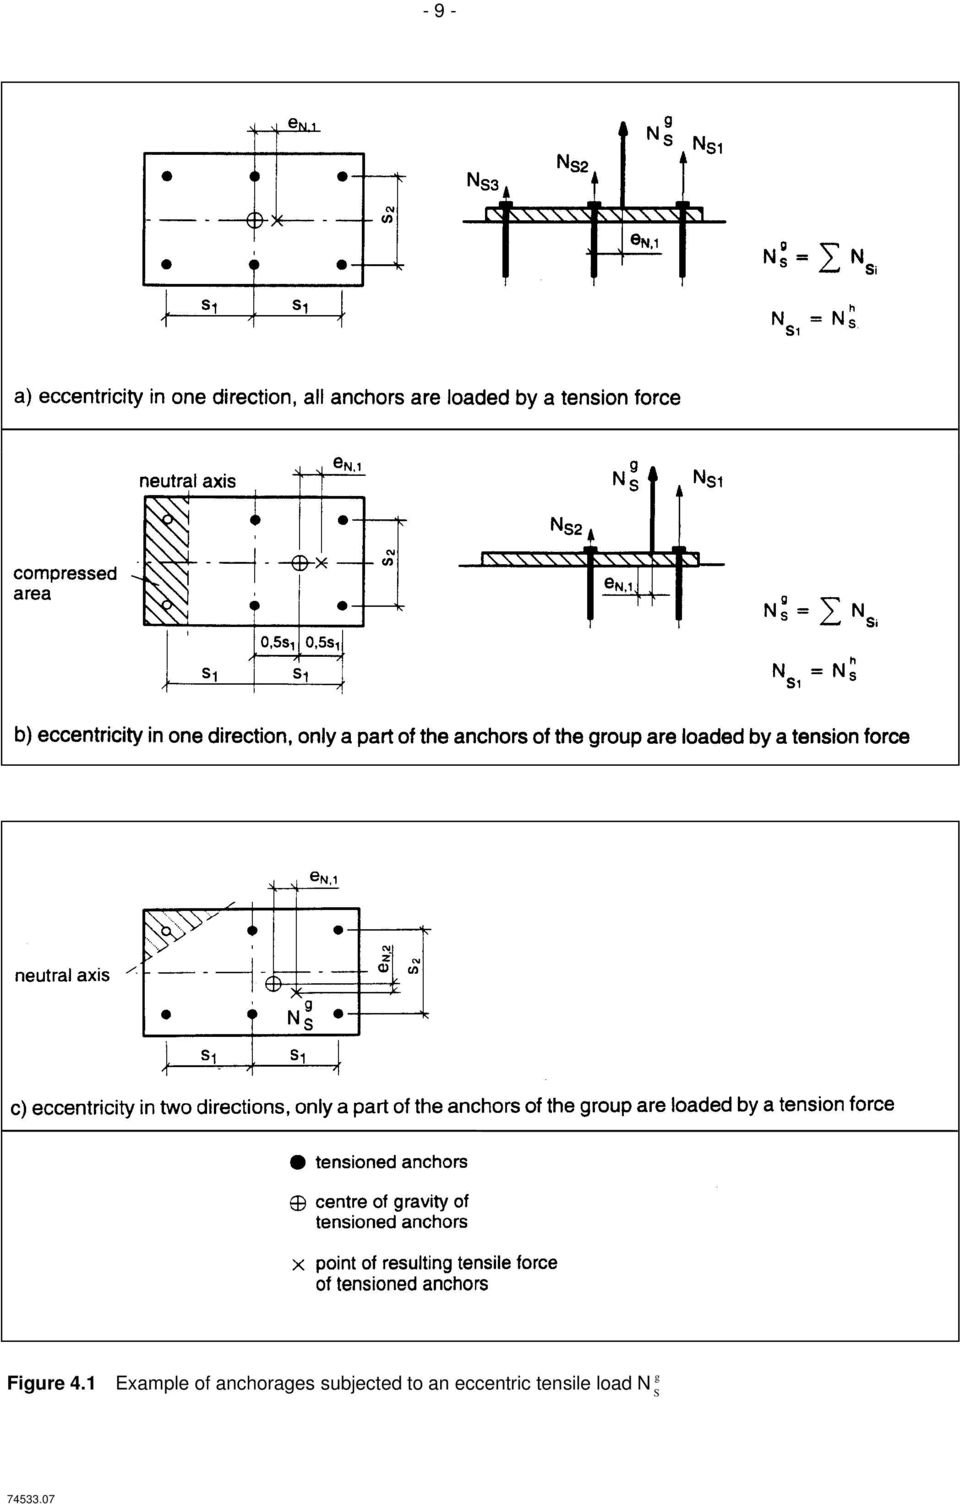 anchorages subjected